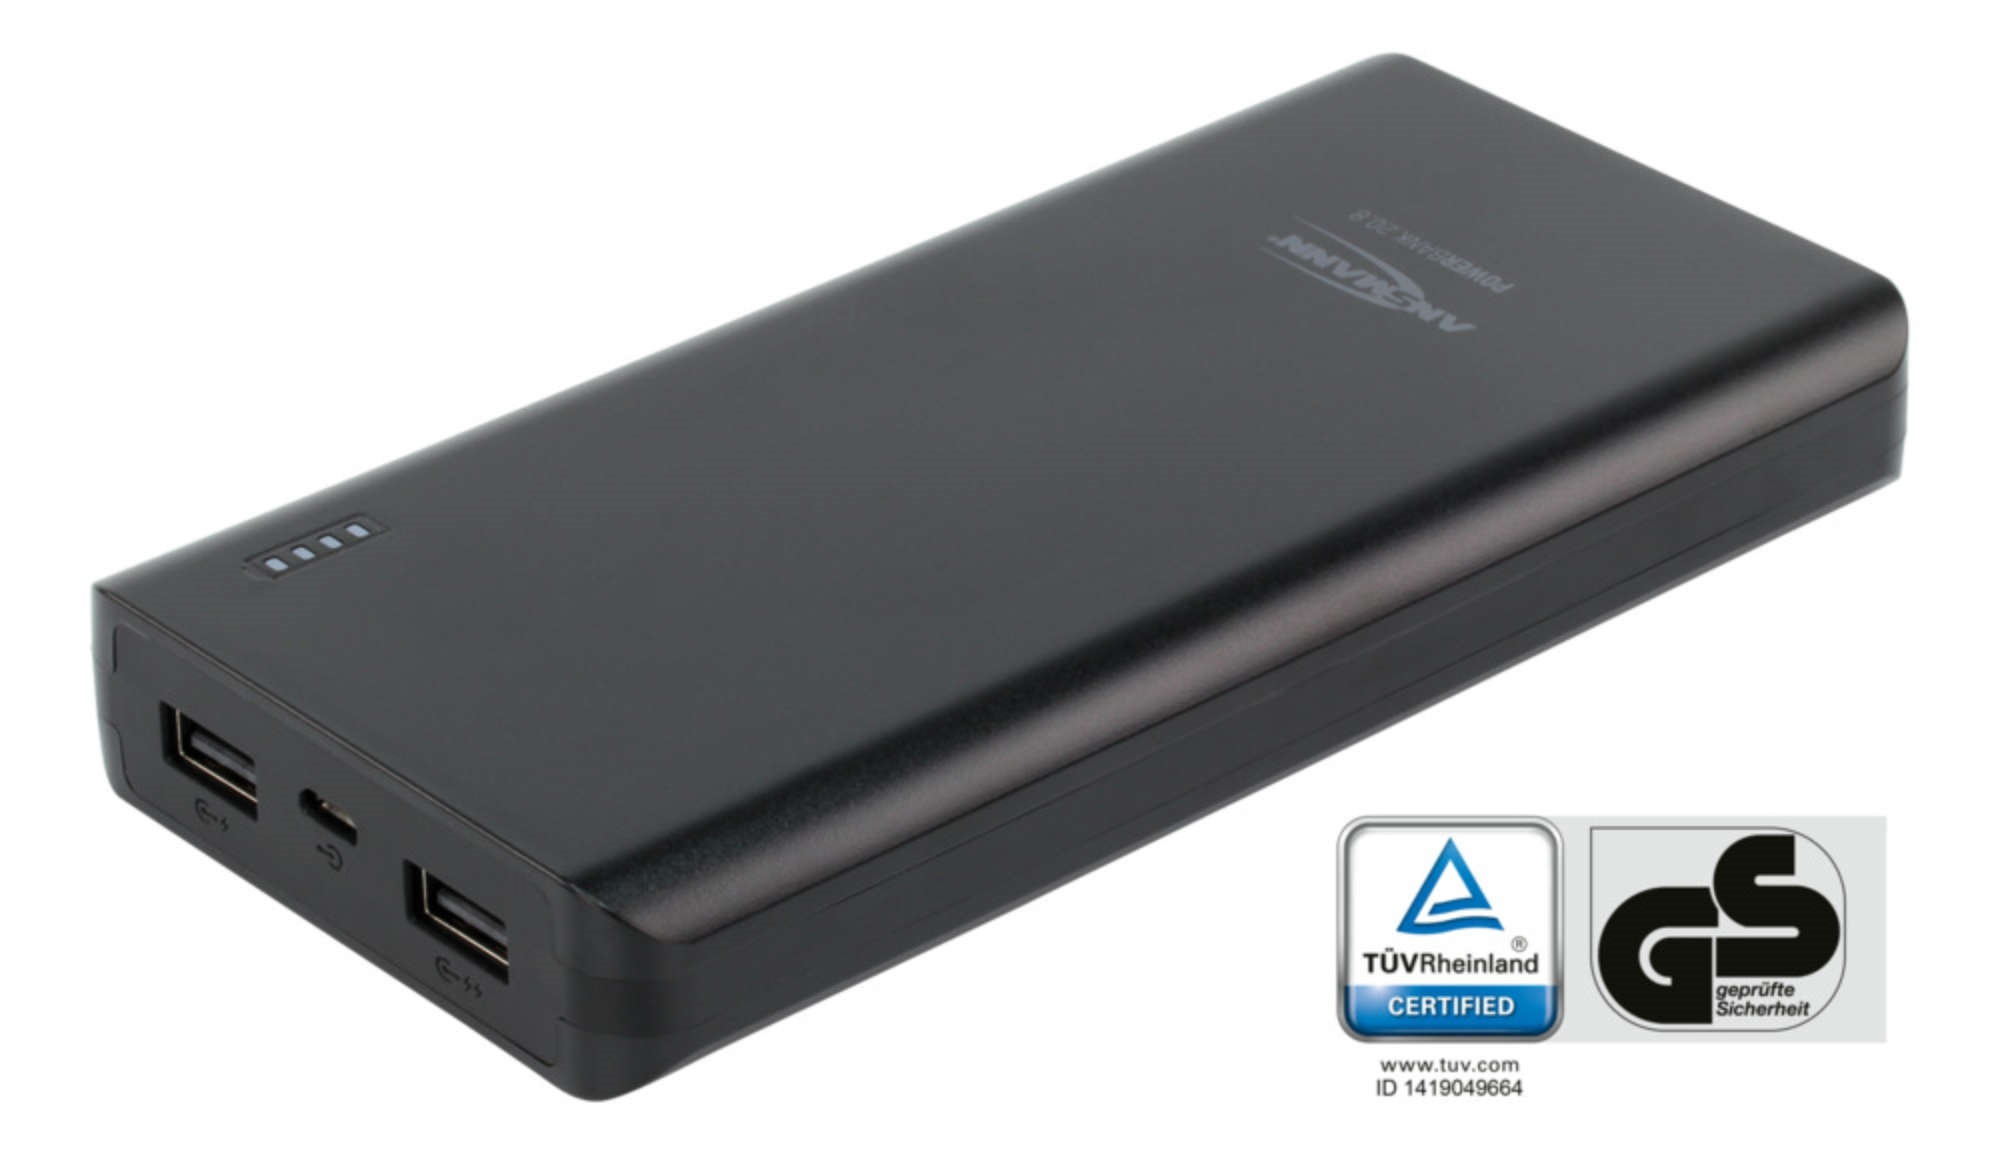 MN-5V-POWERBANK 20.8-10800-BL